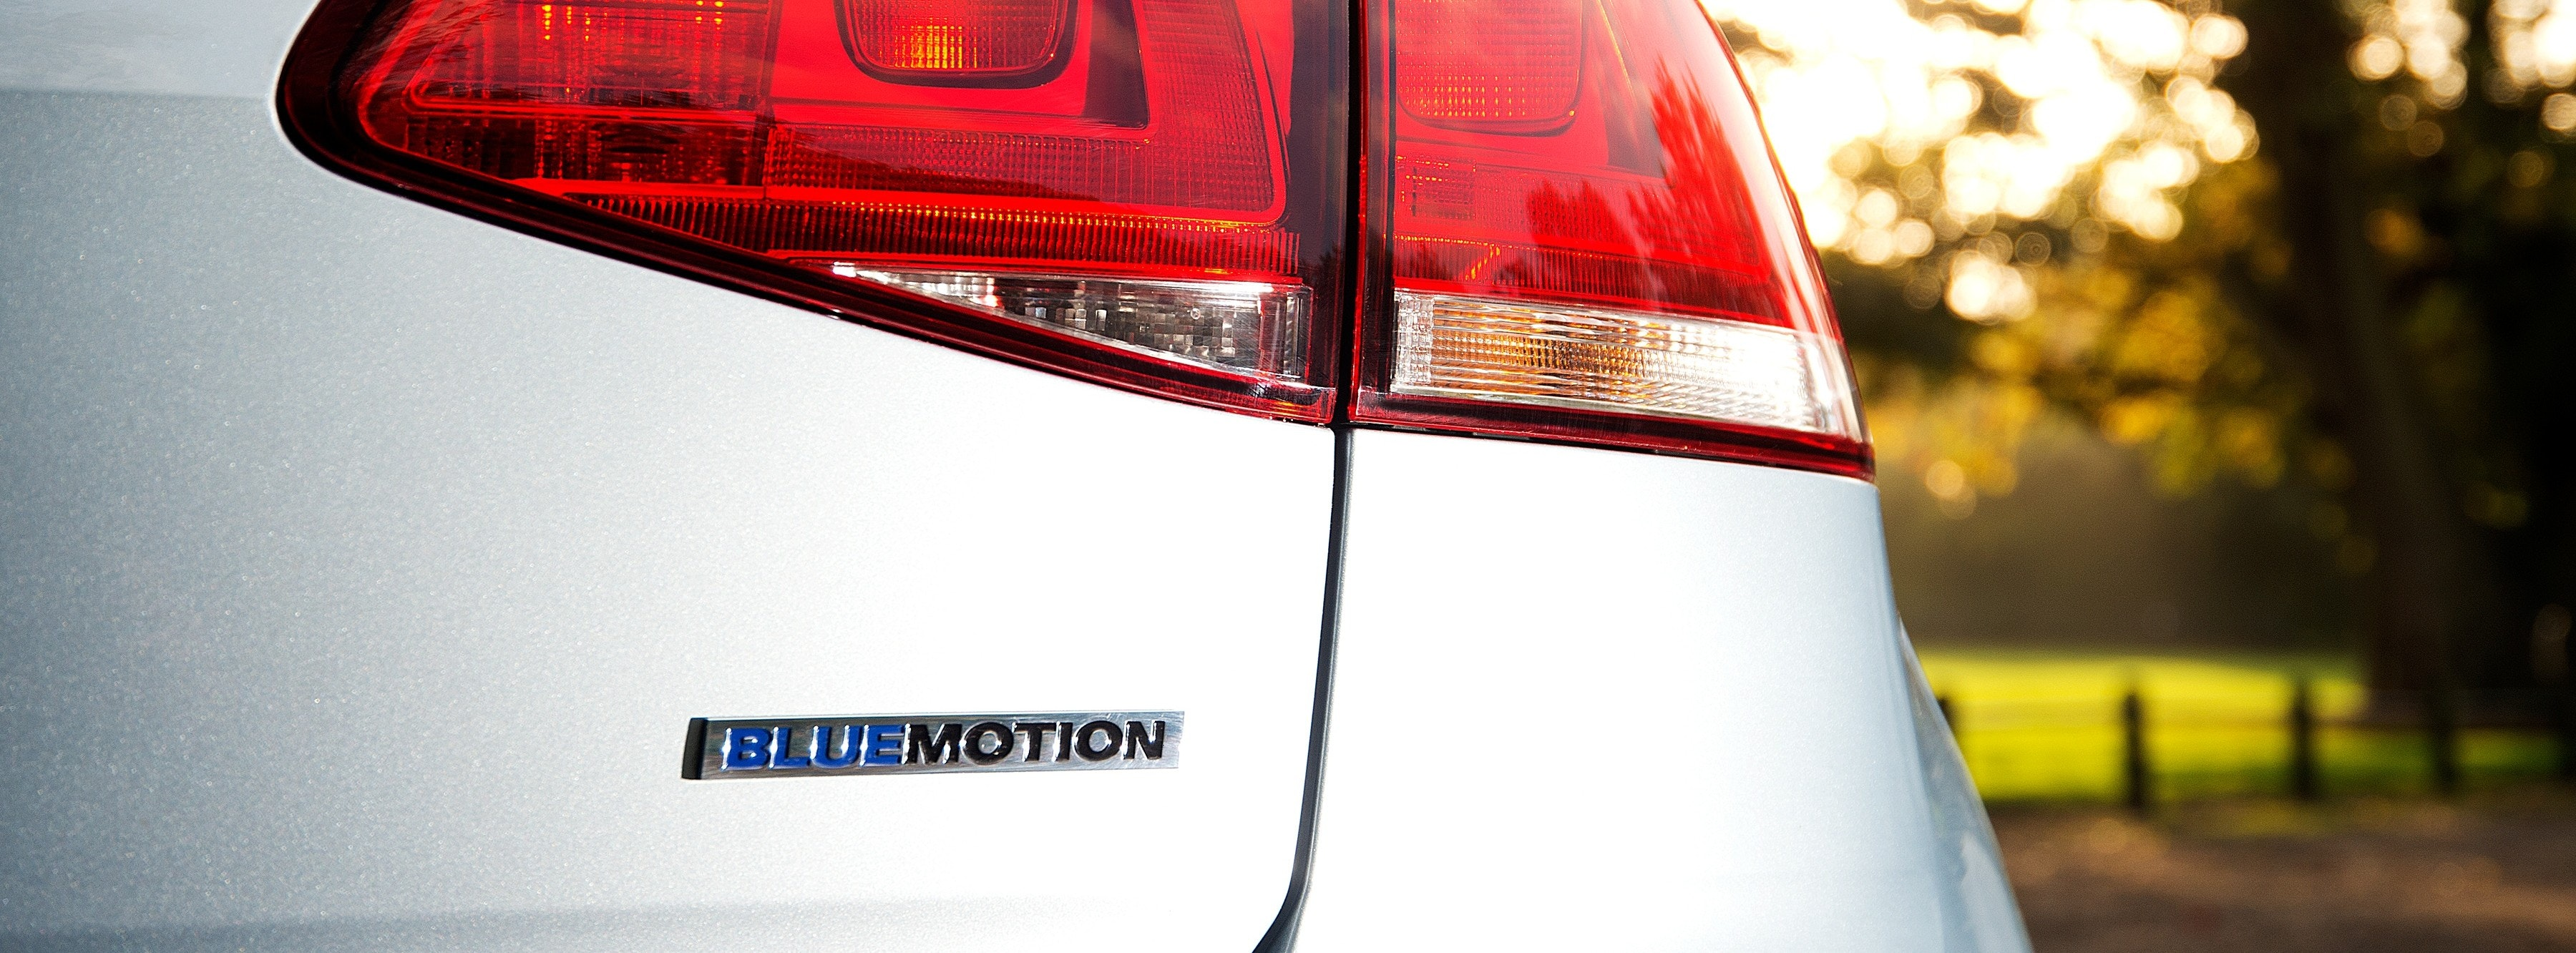 Photo of Golf Bluemotion rear badge